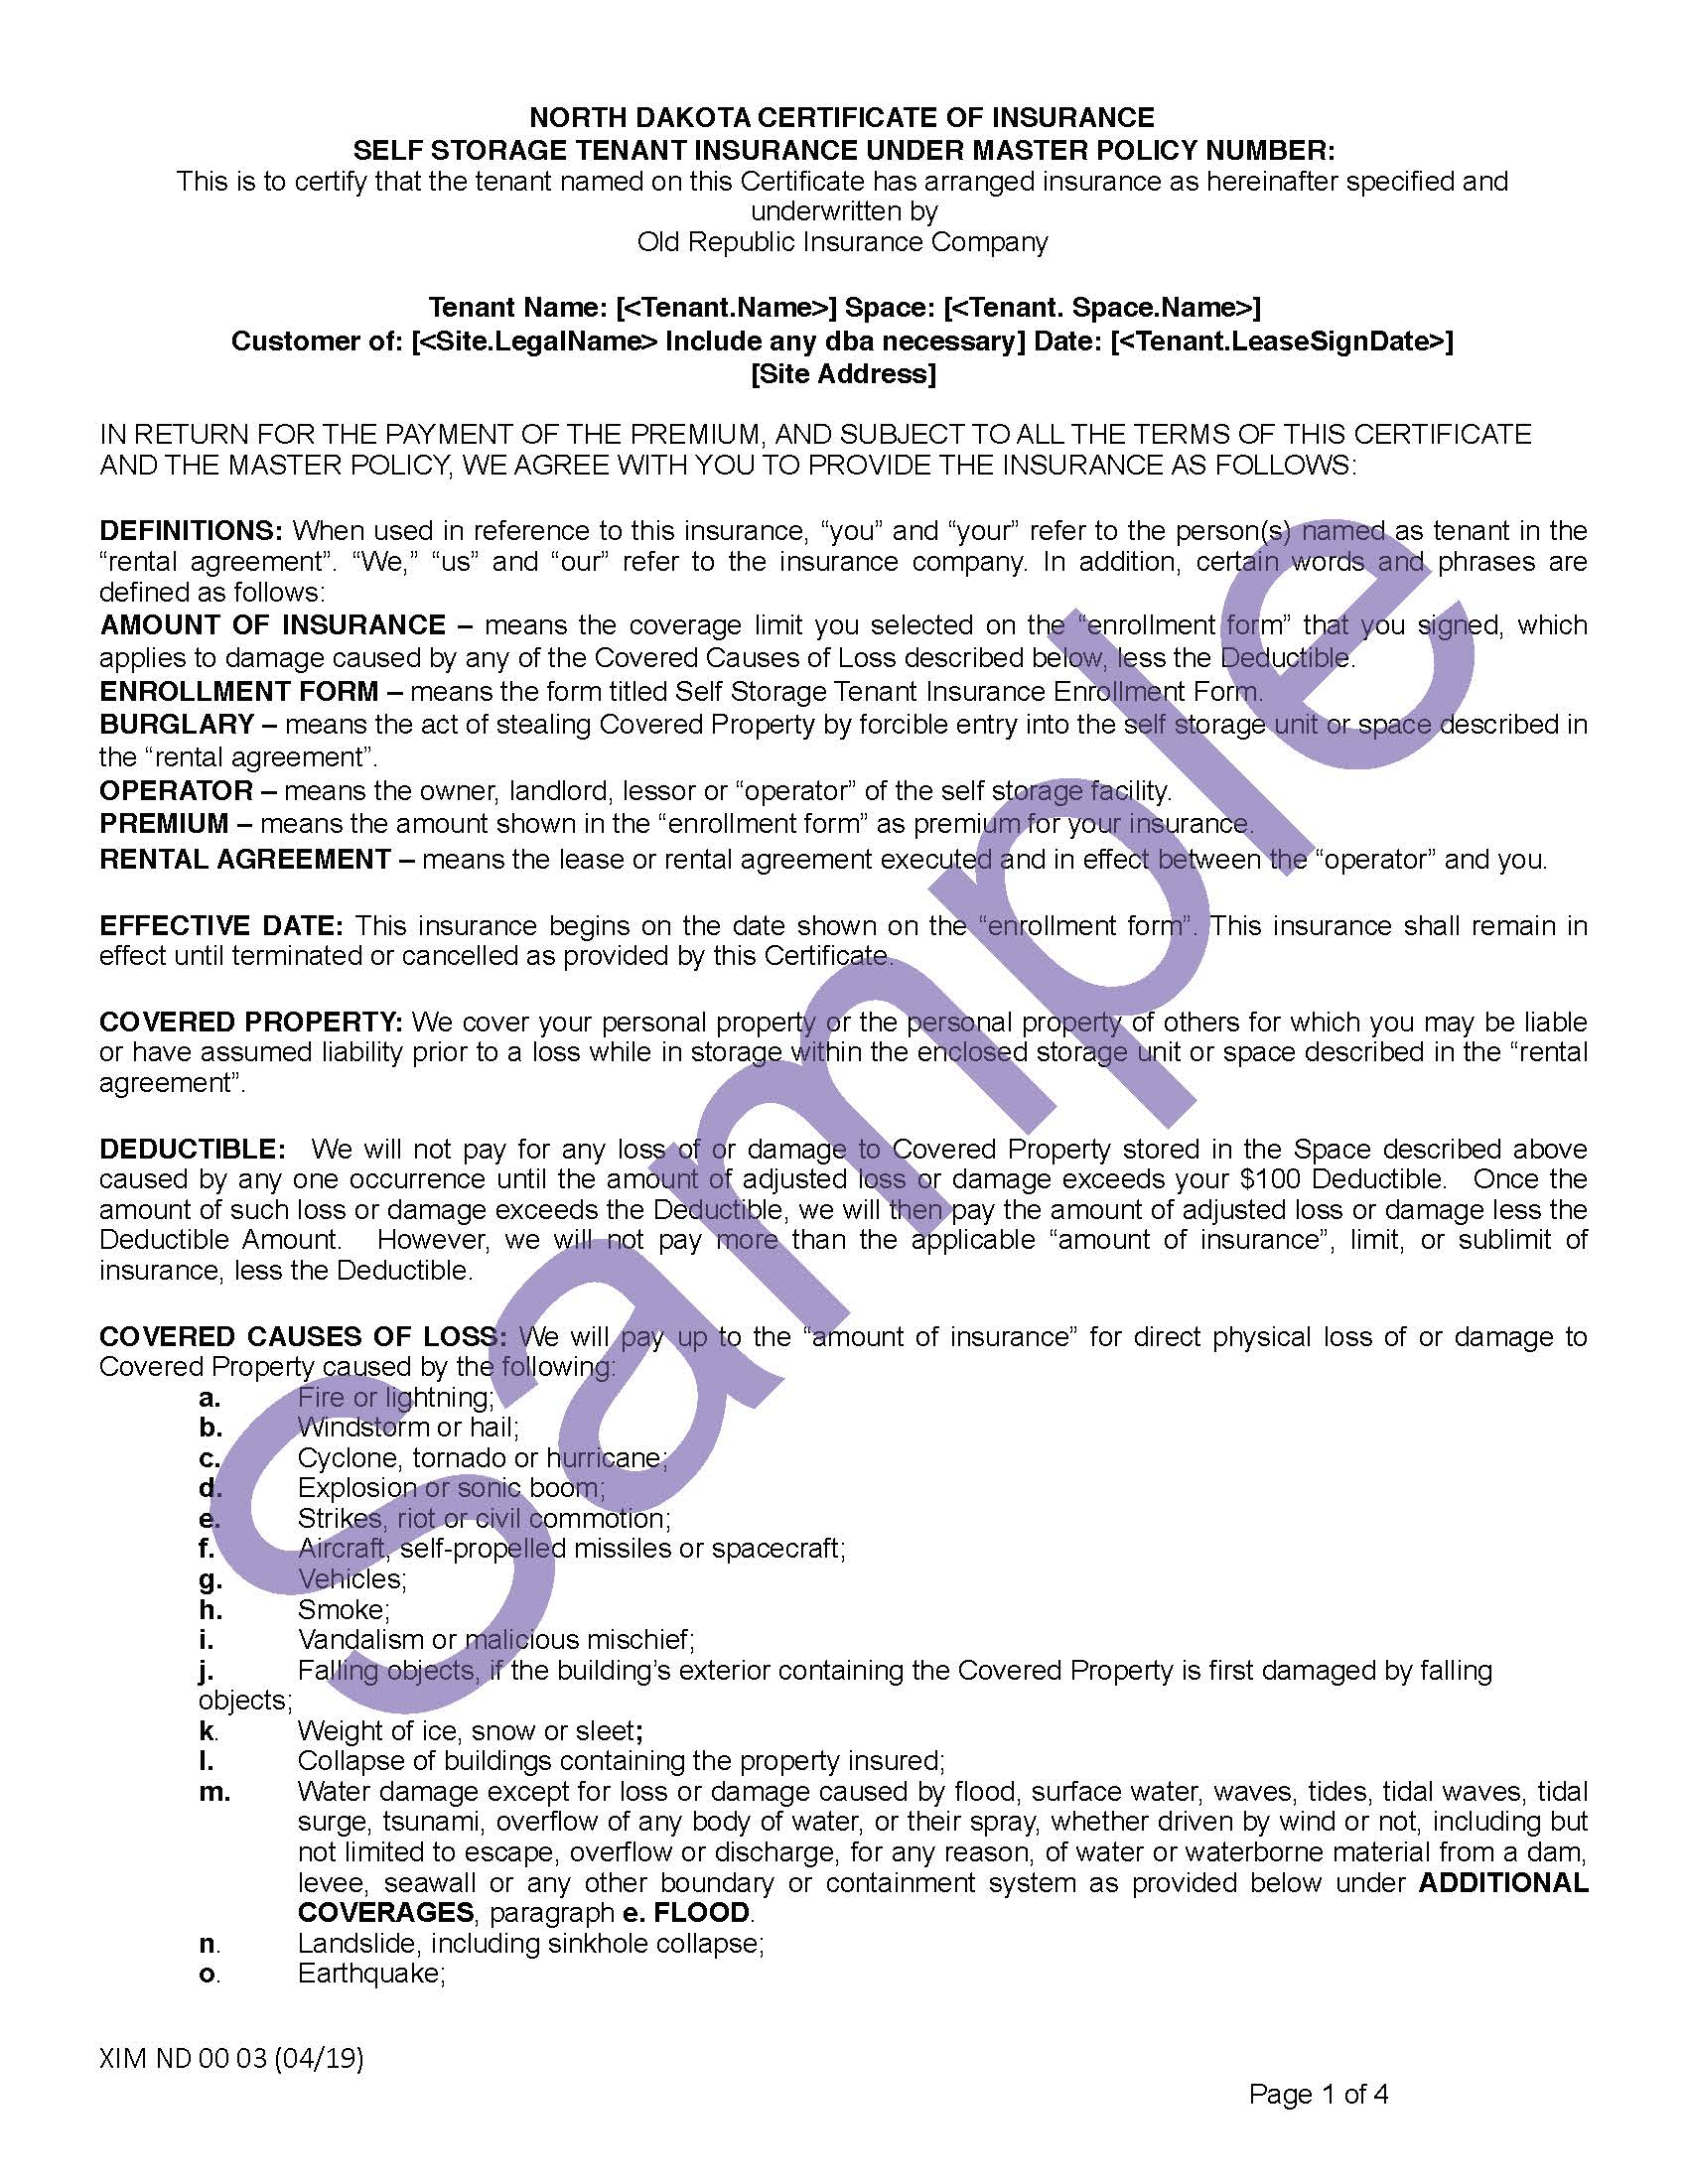 XIM ND 00 03 04 19 North Dakota Certificate of InsuranceSample_Page_1.jpg